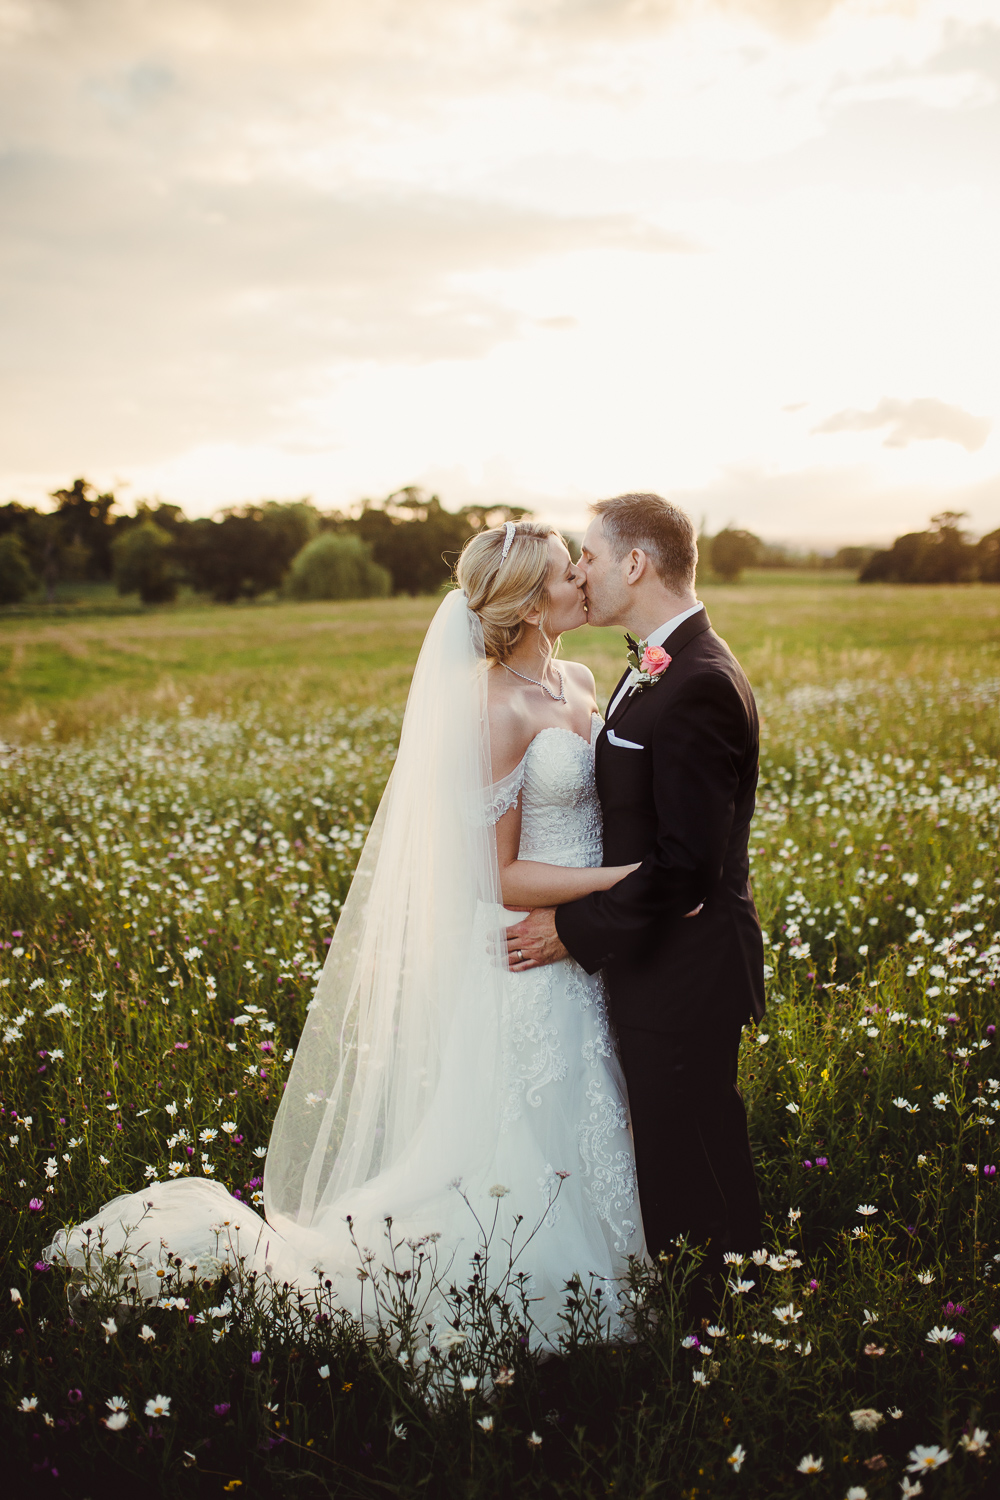 NATURAL_WEDDING_PHOTOGRAPHY_KATHRYN_CALRKE_MCLEOD-93.jpg